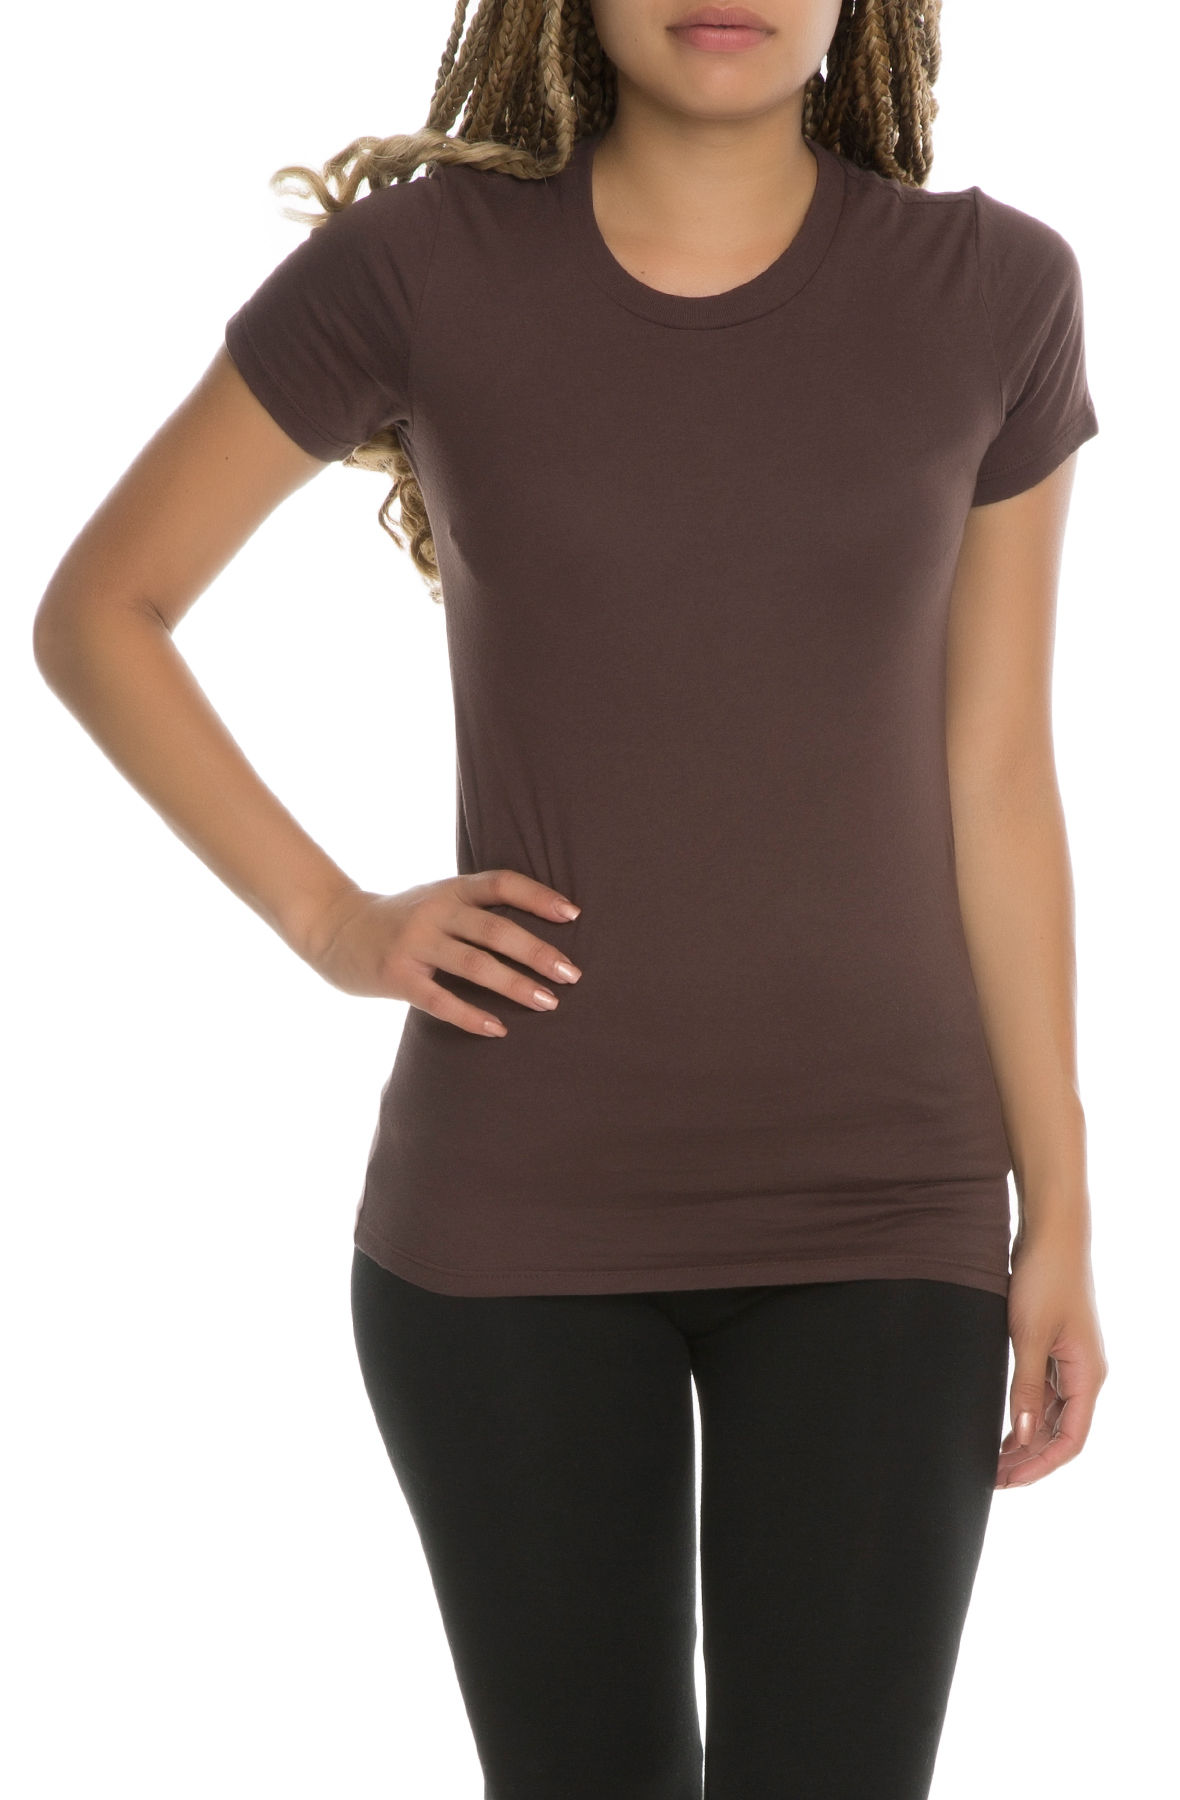 Image of The Debra Women's Basic Crew Neck Tee in Brown